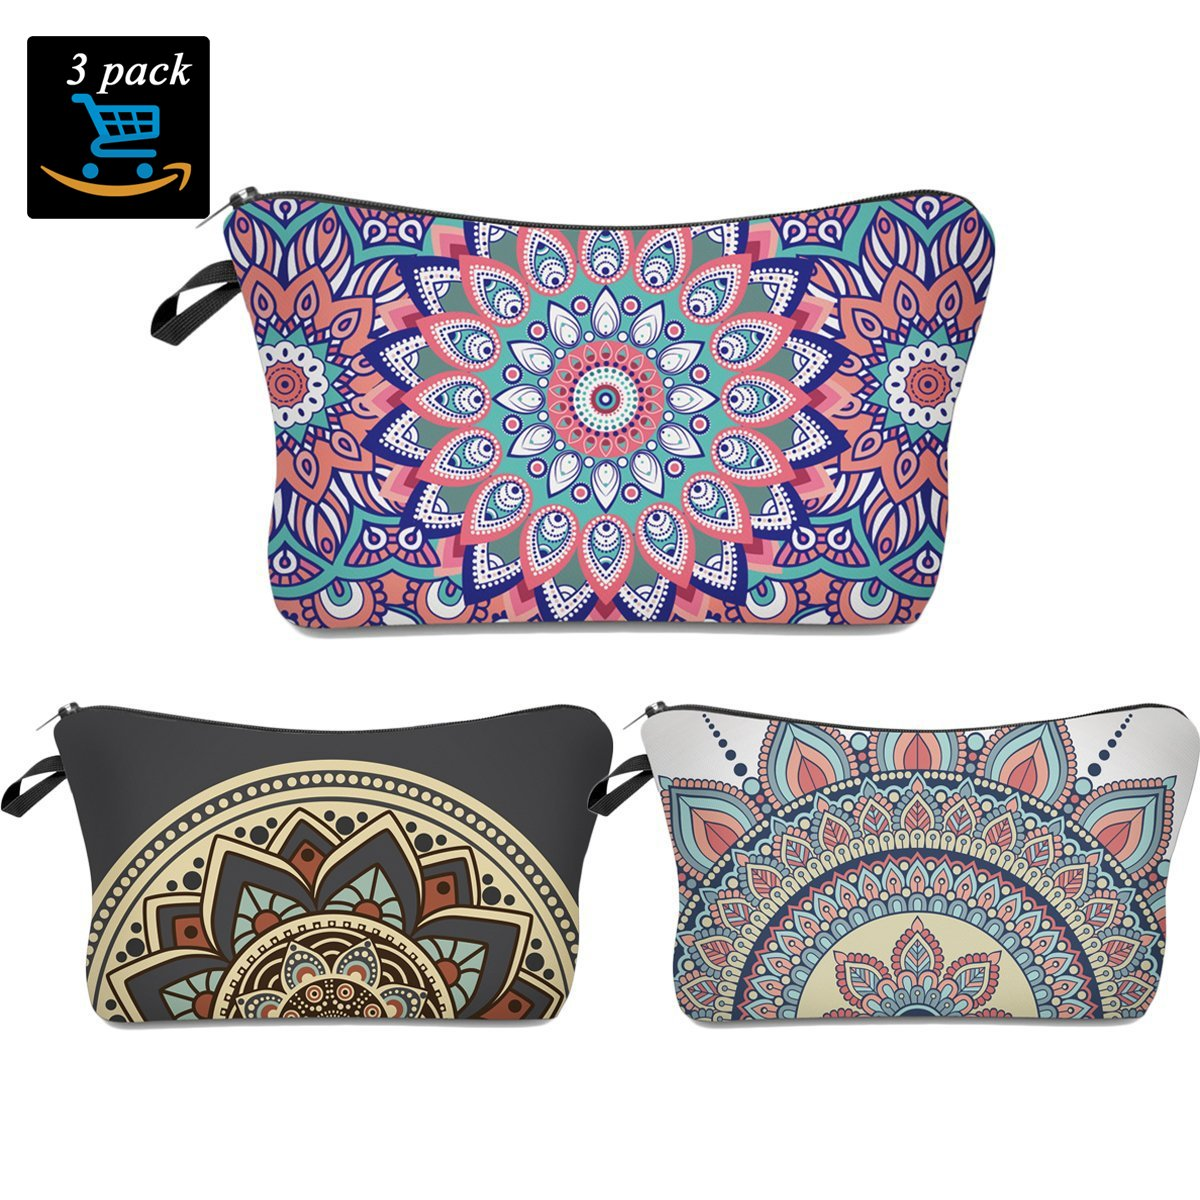 Flower Makeup Bag,Black Deals Friday Cyber Deals Monday Deals-Handy Travel Cosmetic Makeup Clutch Bag Case Pouch Nylon Zipper Carry On Bag for Women Multifuncition Pencil Holder Pouch (Boho 3 Pack)